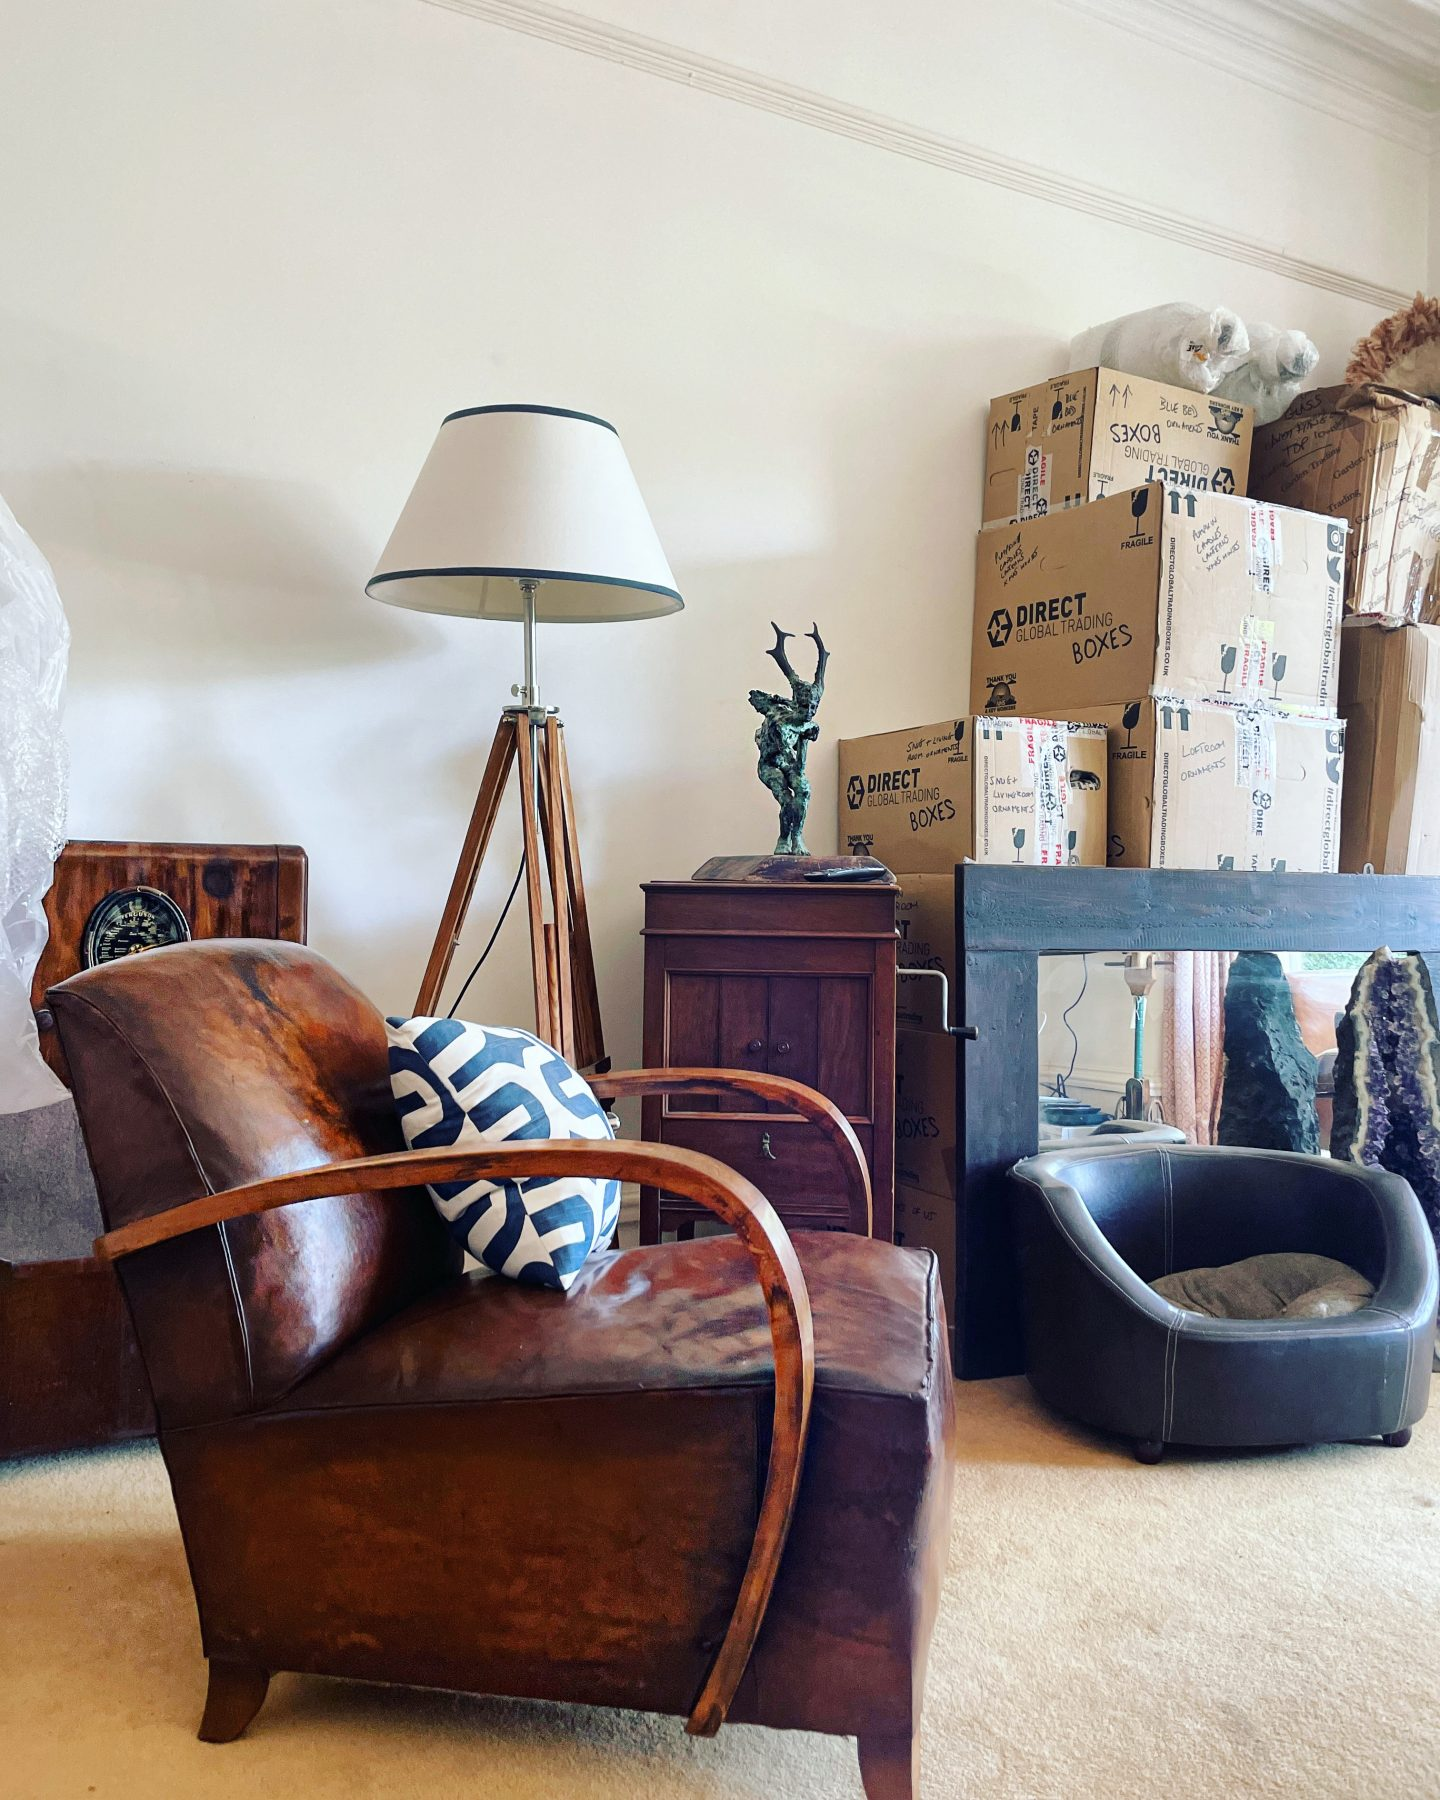 Victorian gothic semi detached house - the living room, with moving boxes.  Owned by Jp Clark @jpslifeandloves jpslifeandloves.com